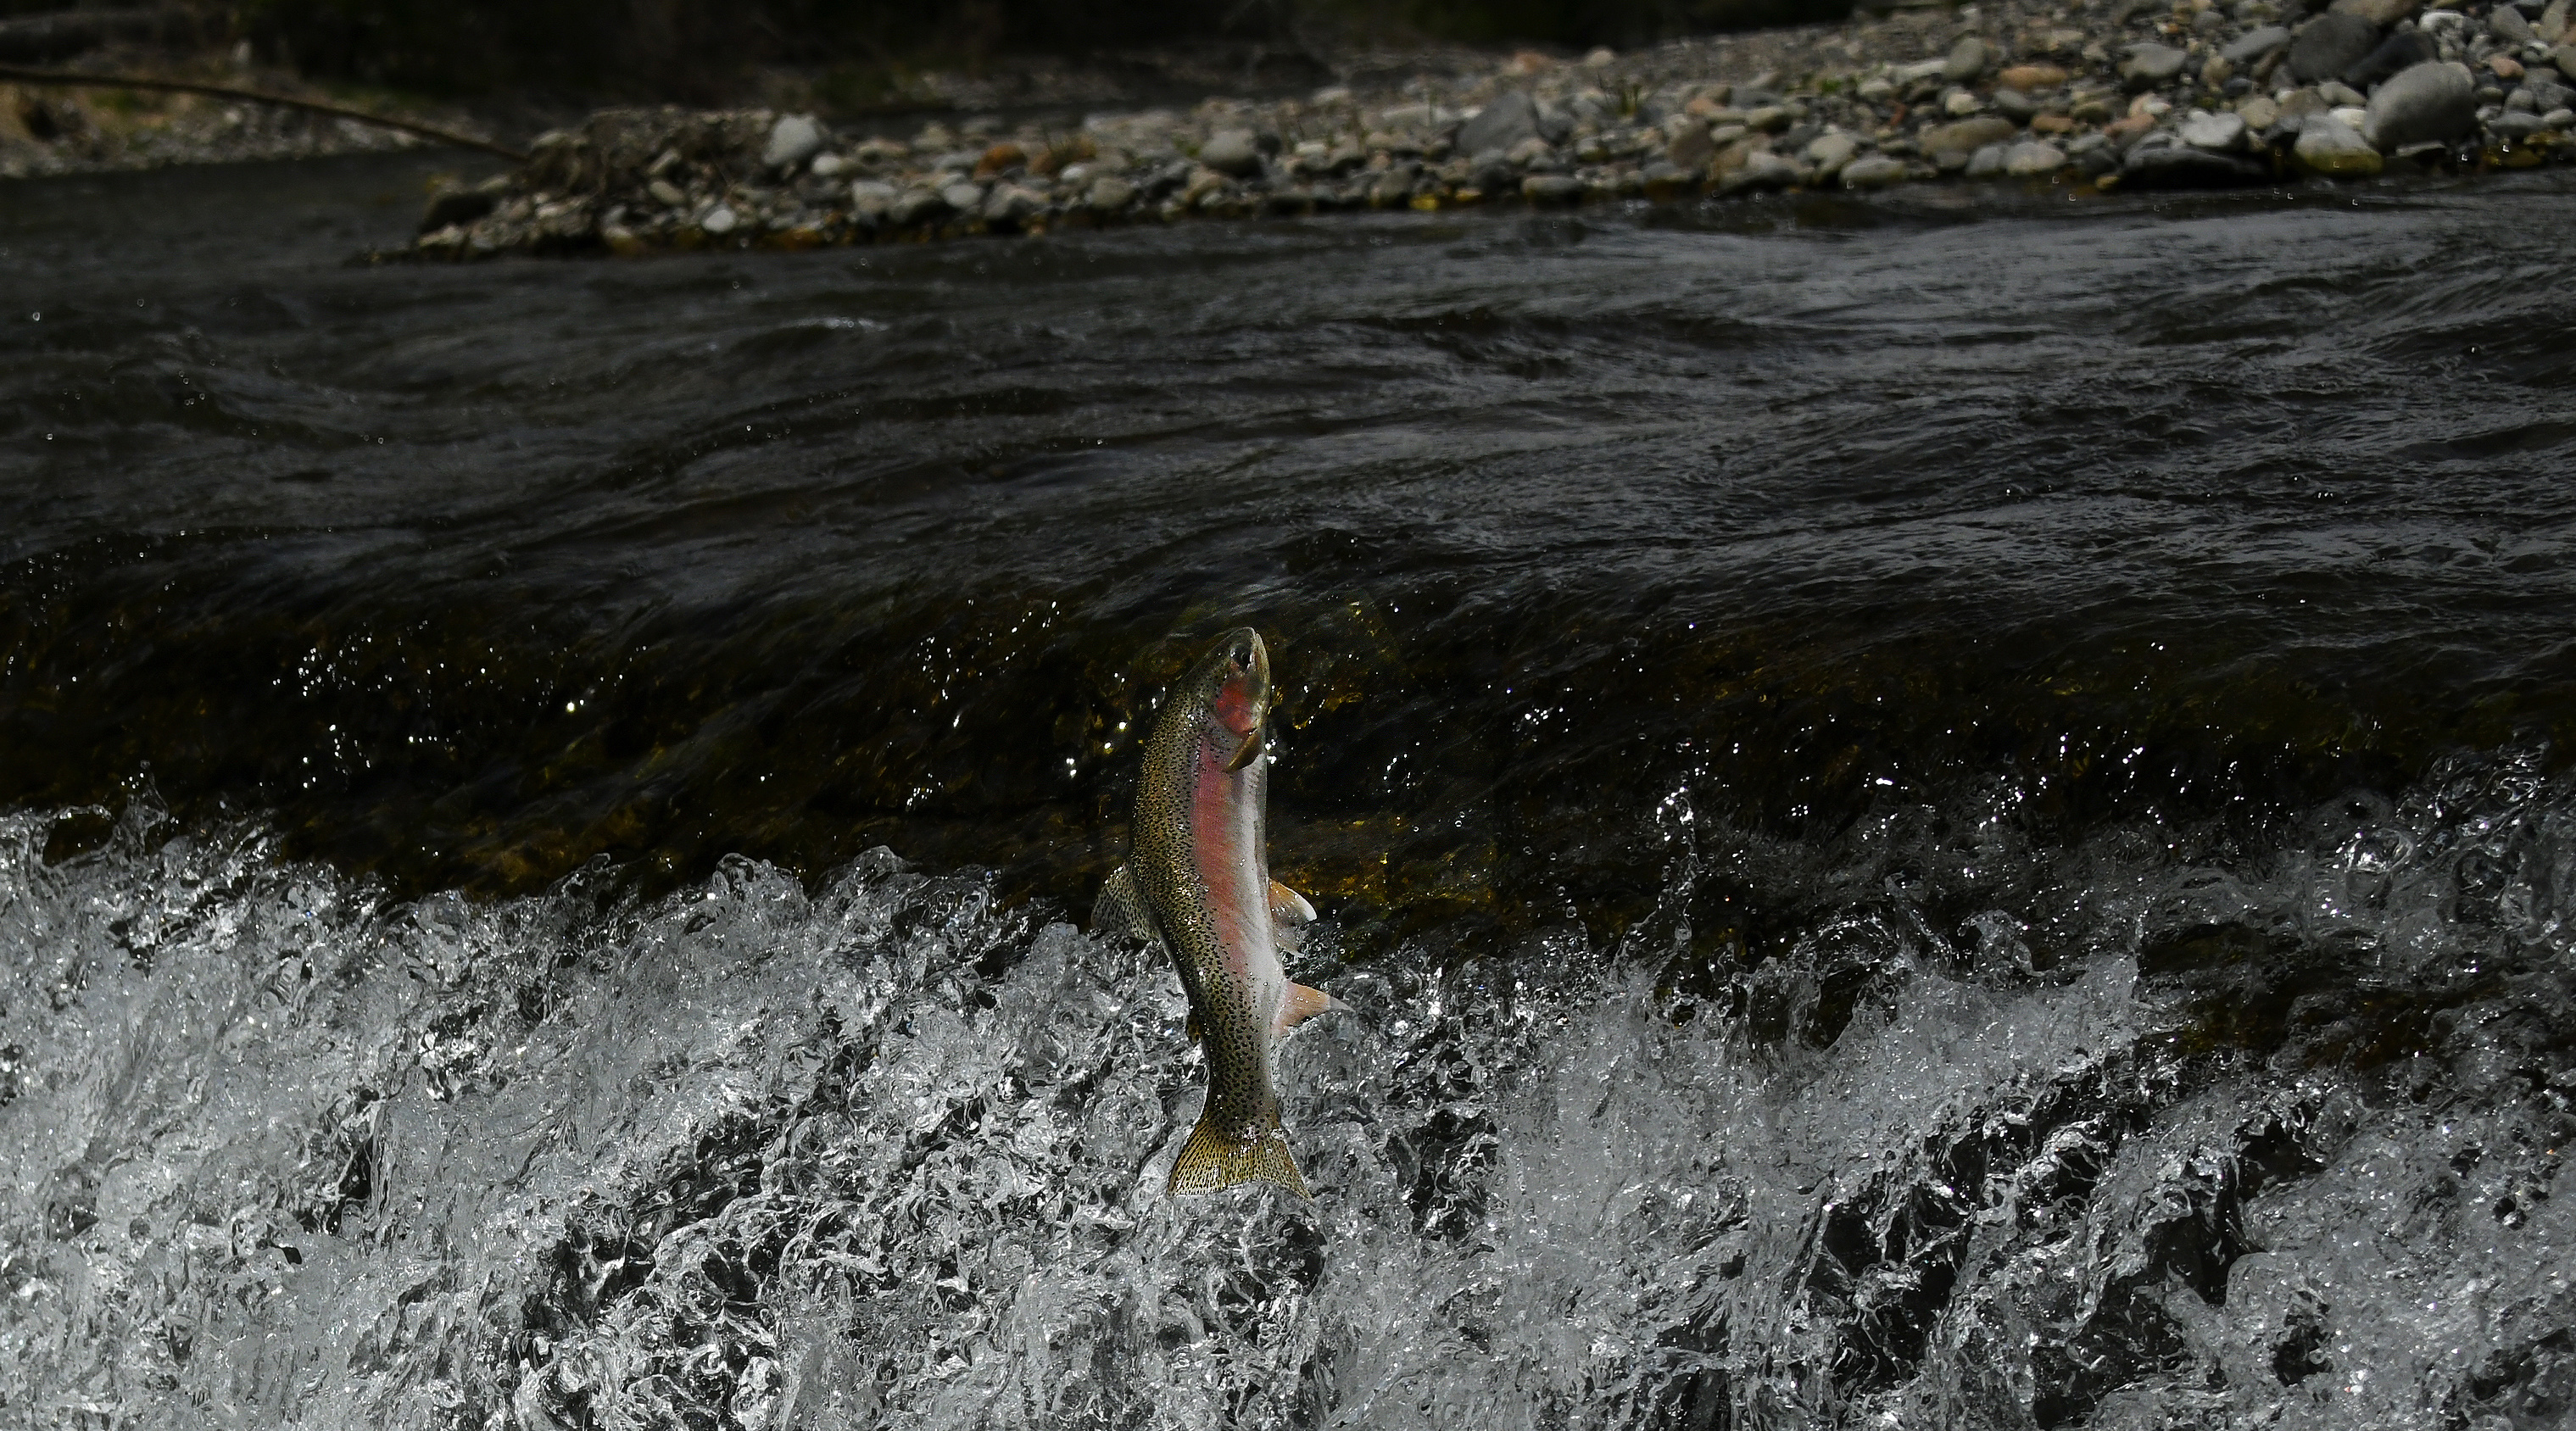 leaping_rainbow_trout_big_wood_river_may_2020_cropped